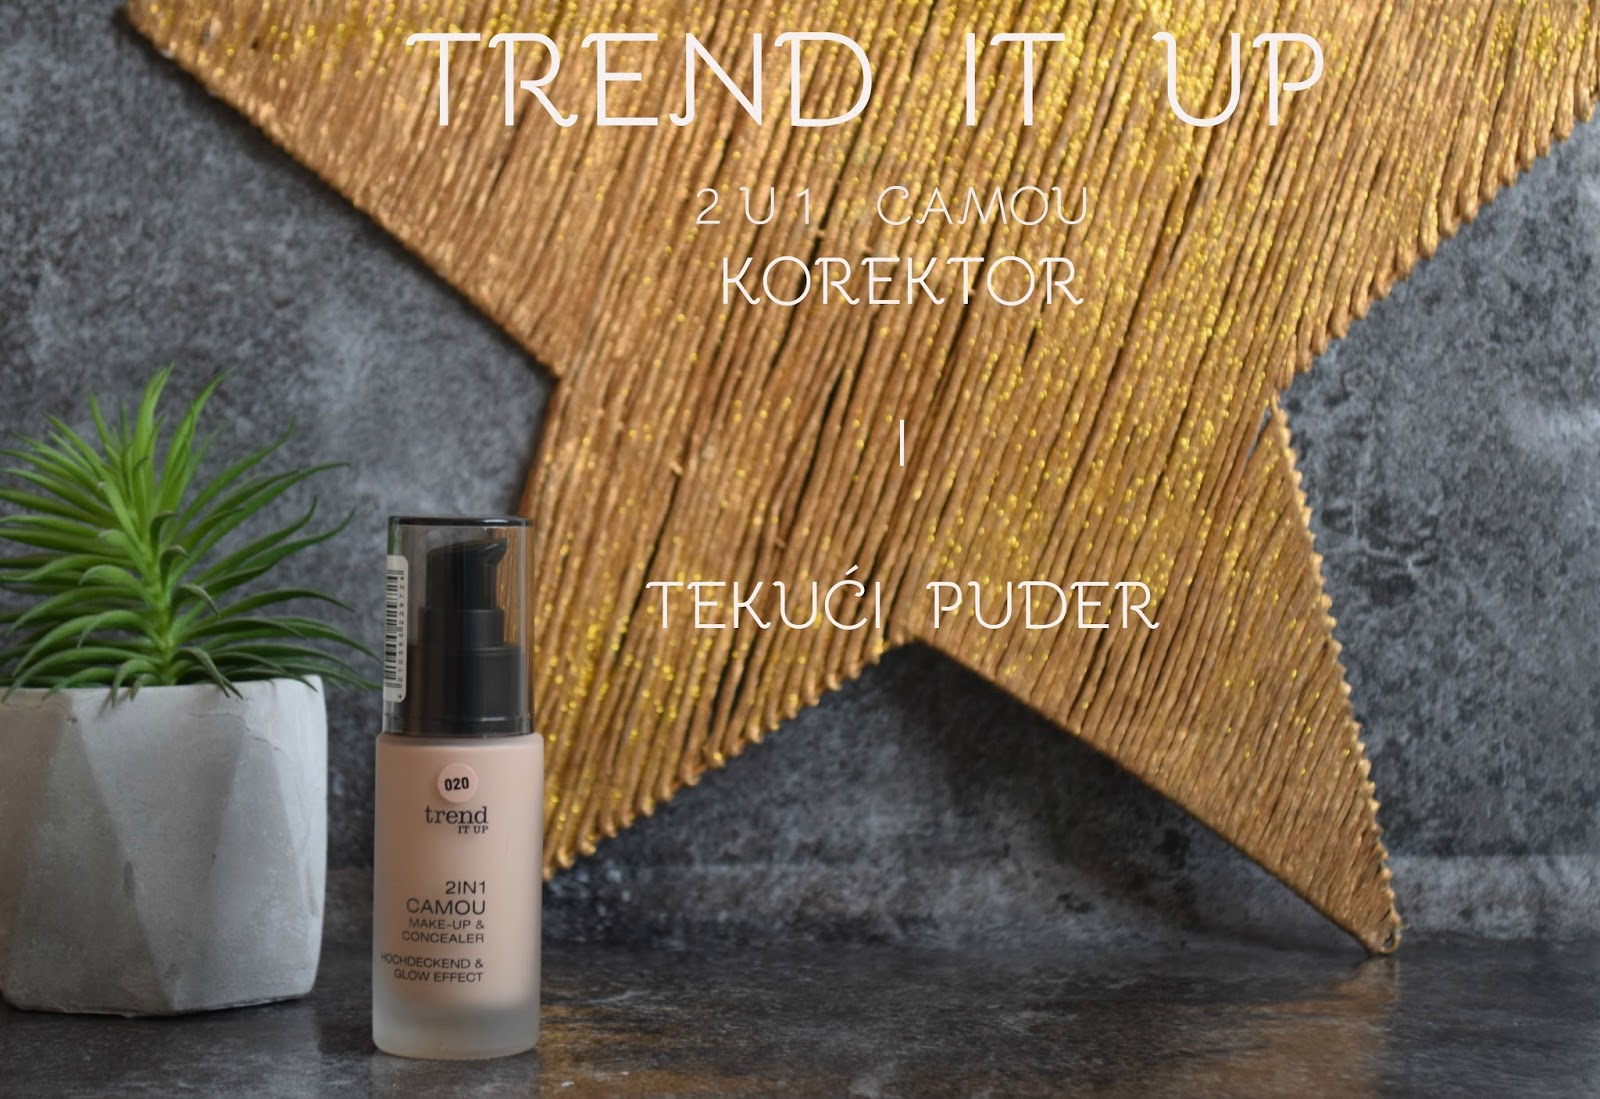 Trend-it-up-2-u-1-camou-make-up-&-concealer-review